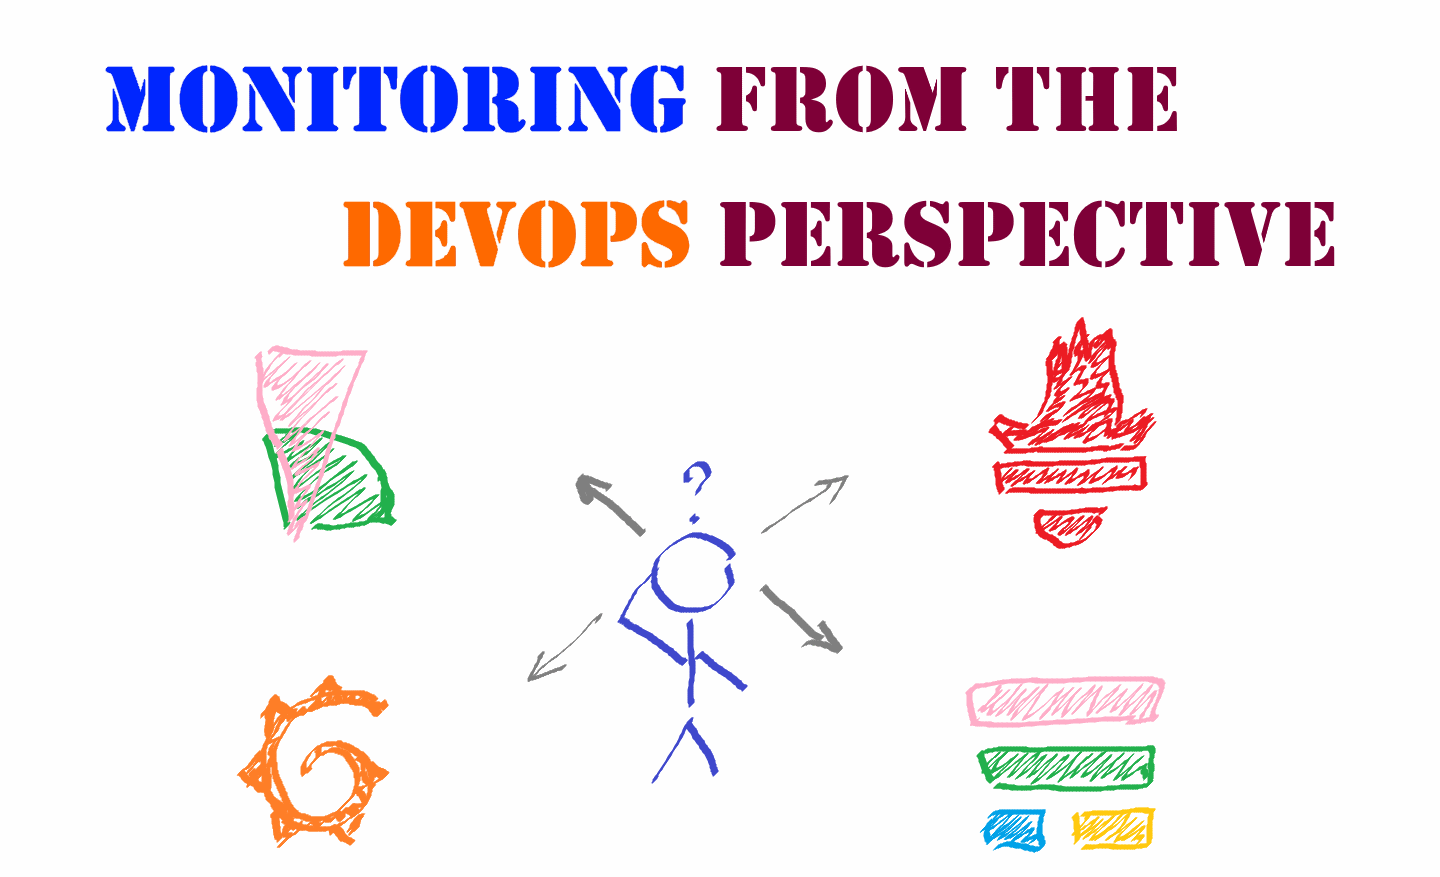 Monitoring from the DevOps perspective